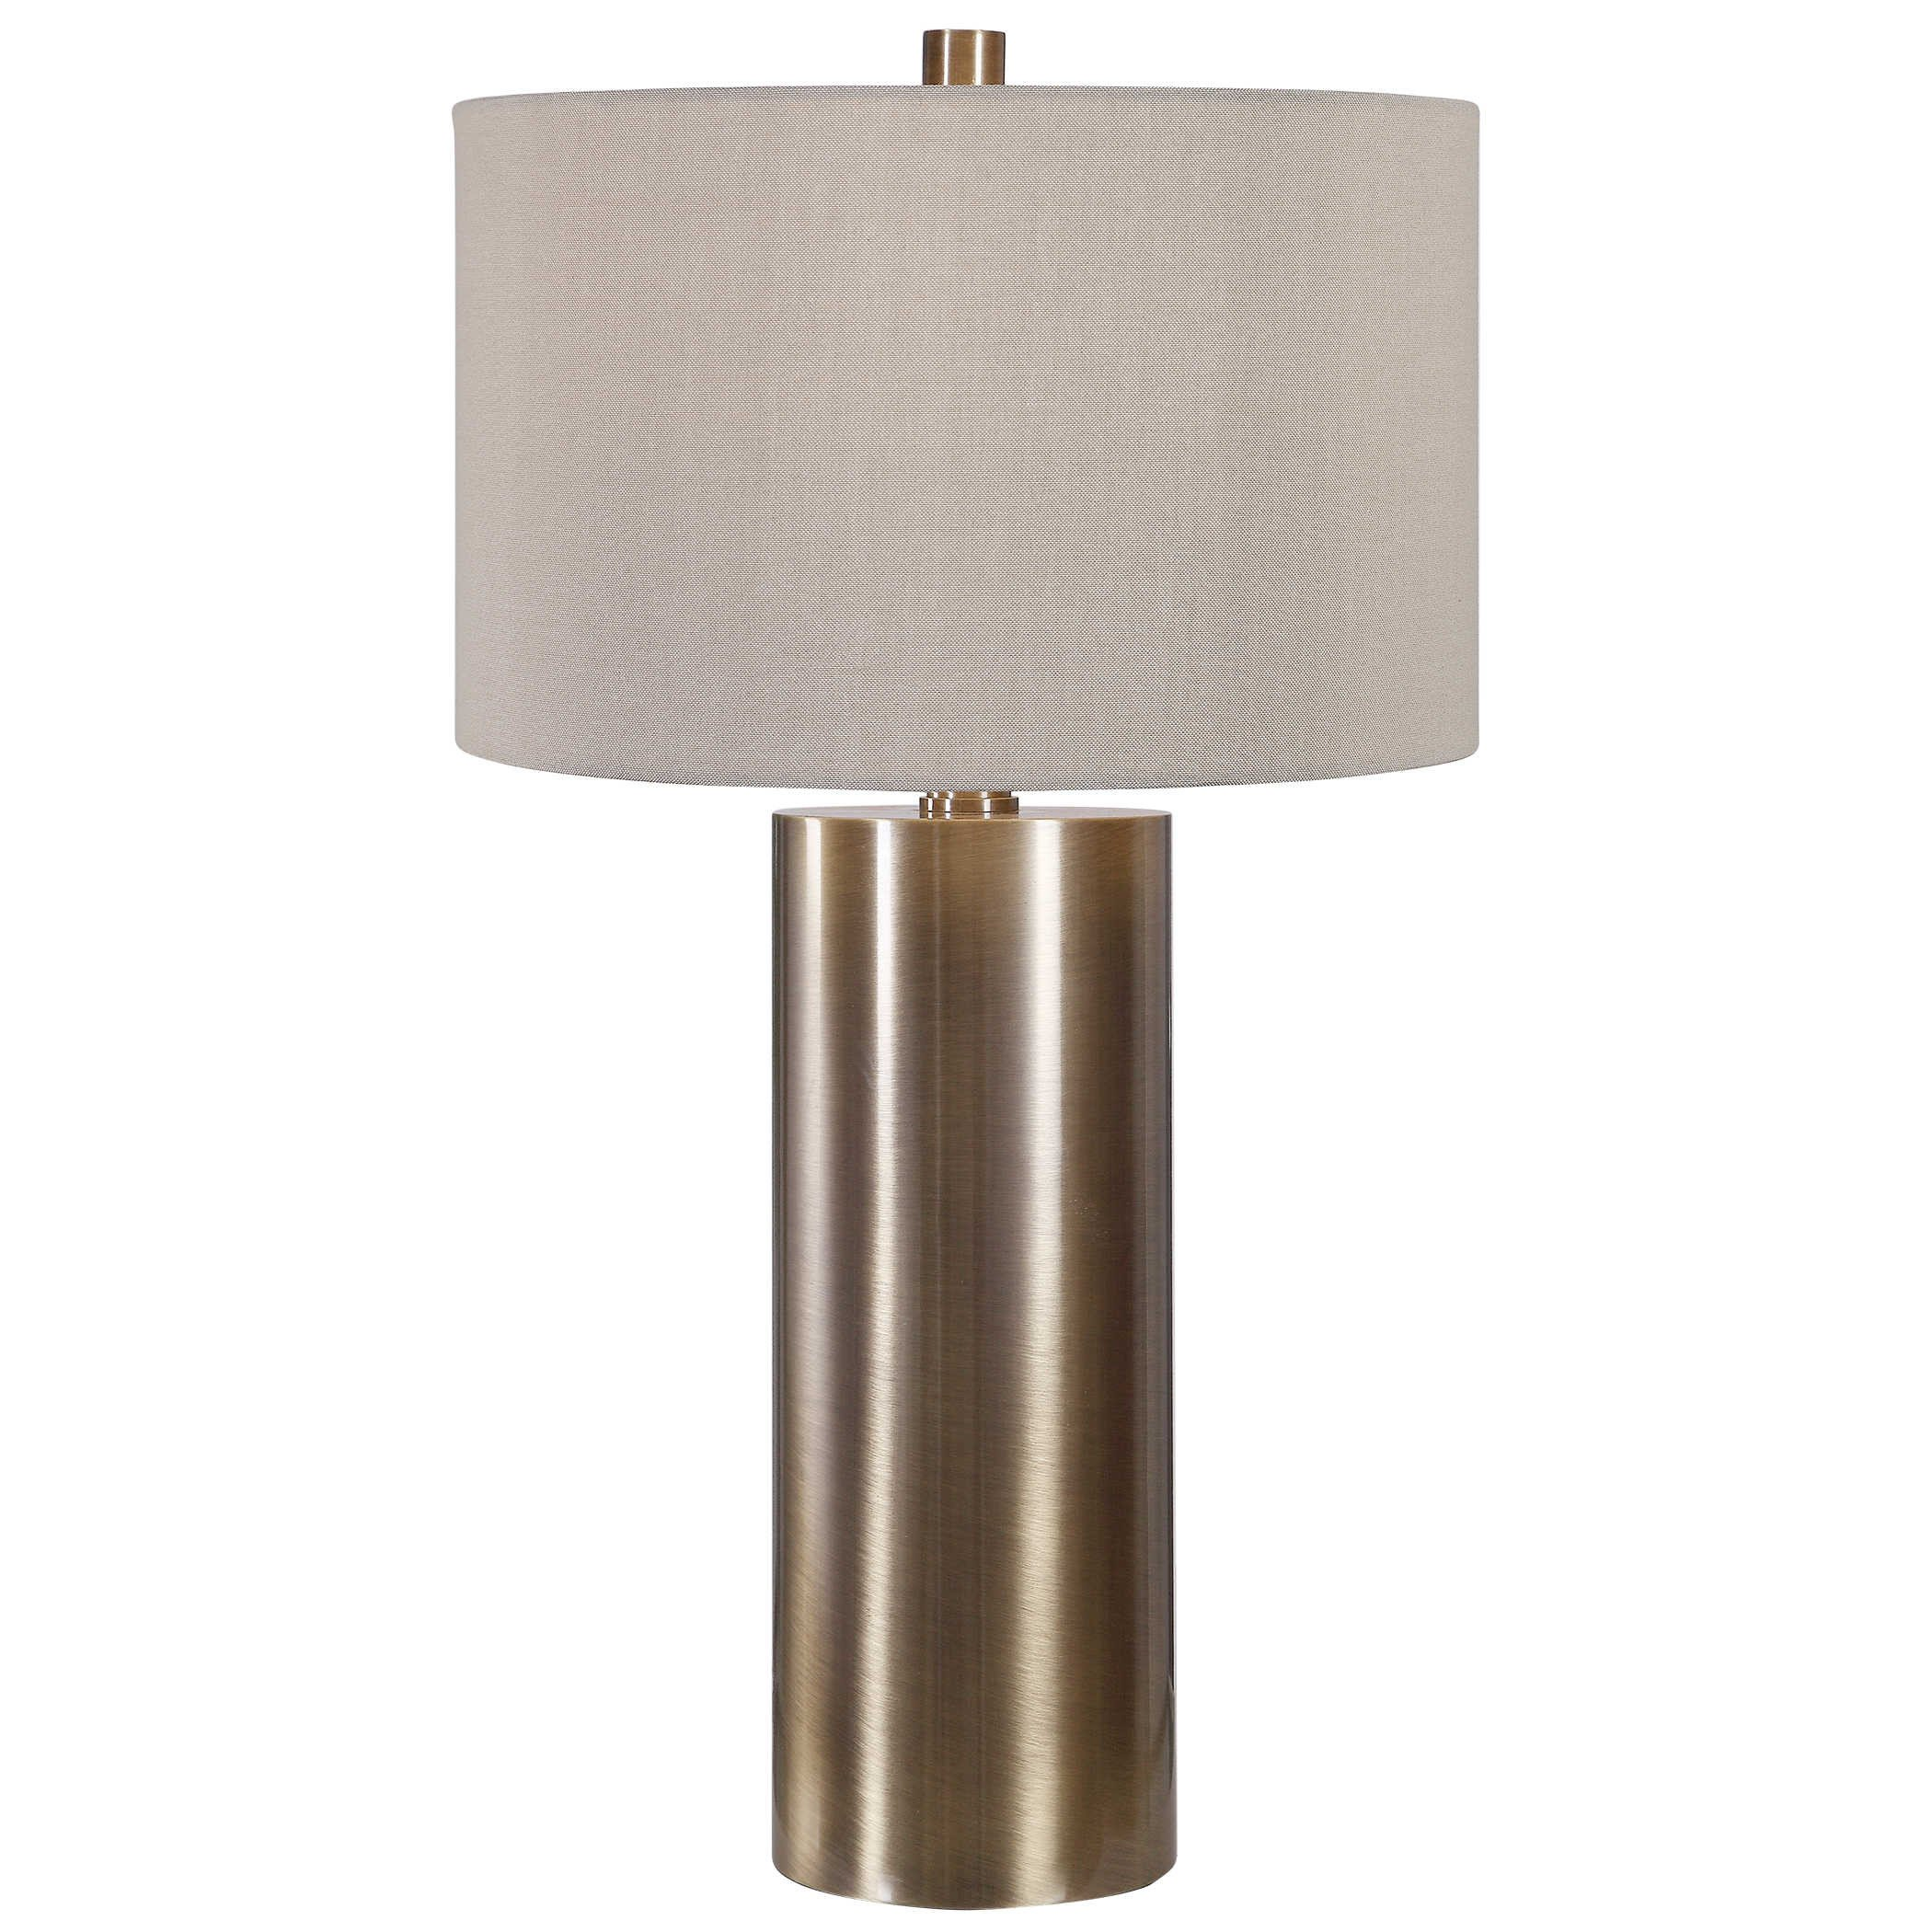 Cool Lamps for Bedroom Luxury Taria Table Lamp